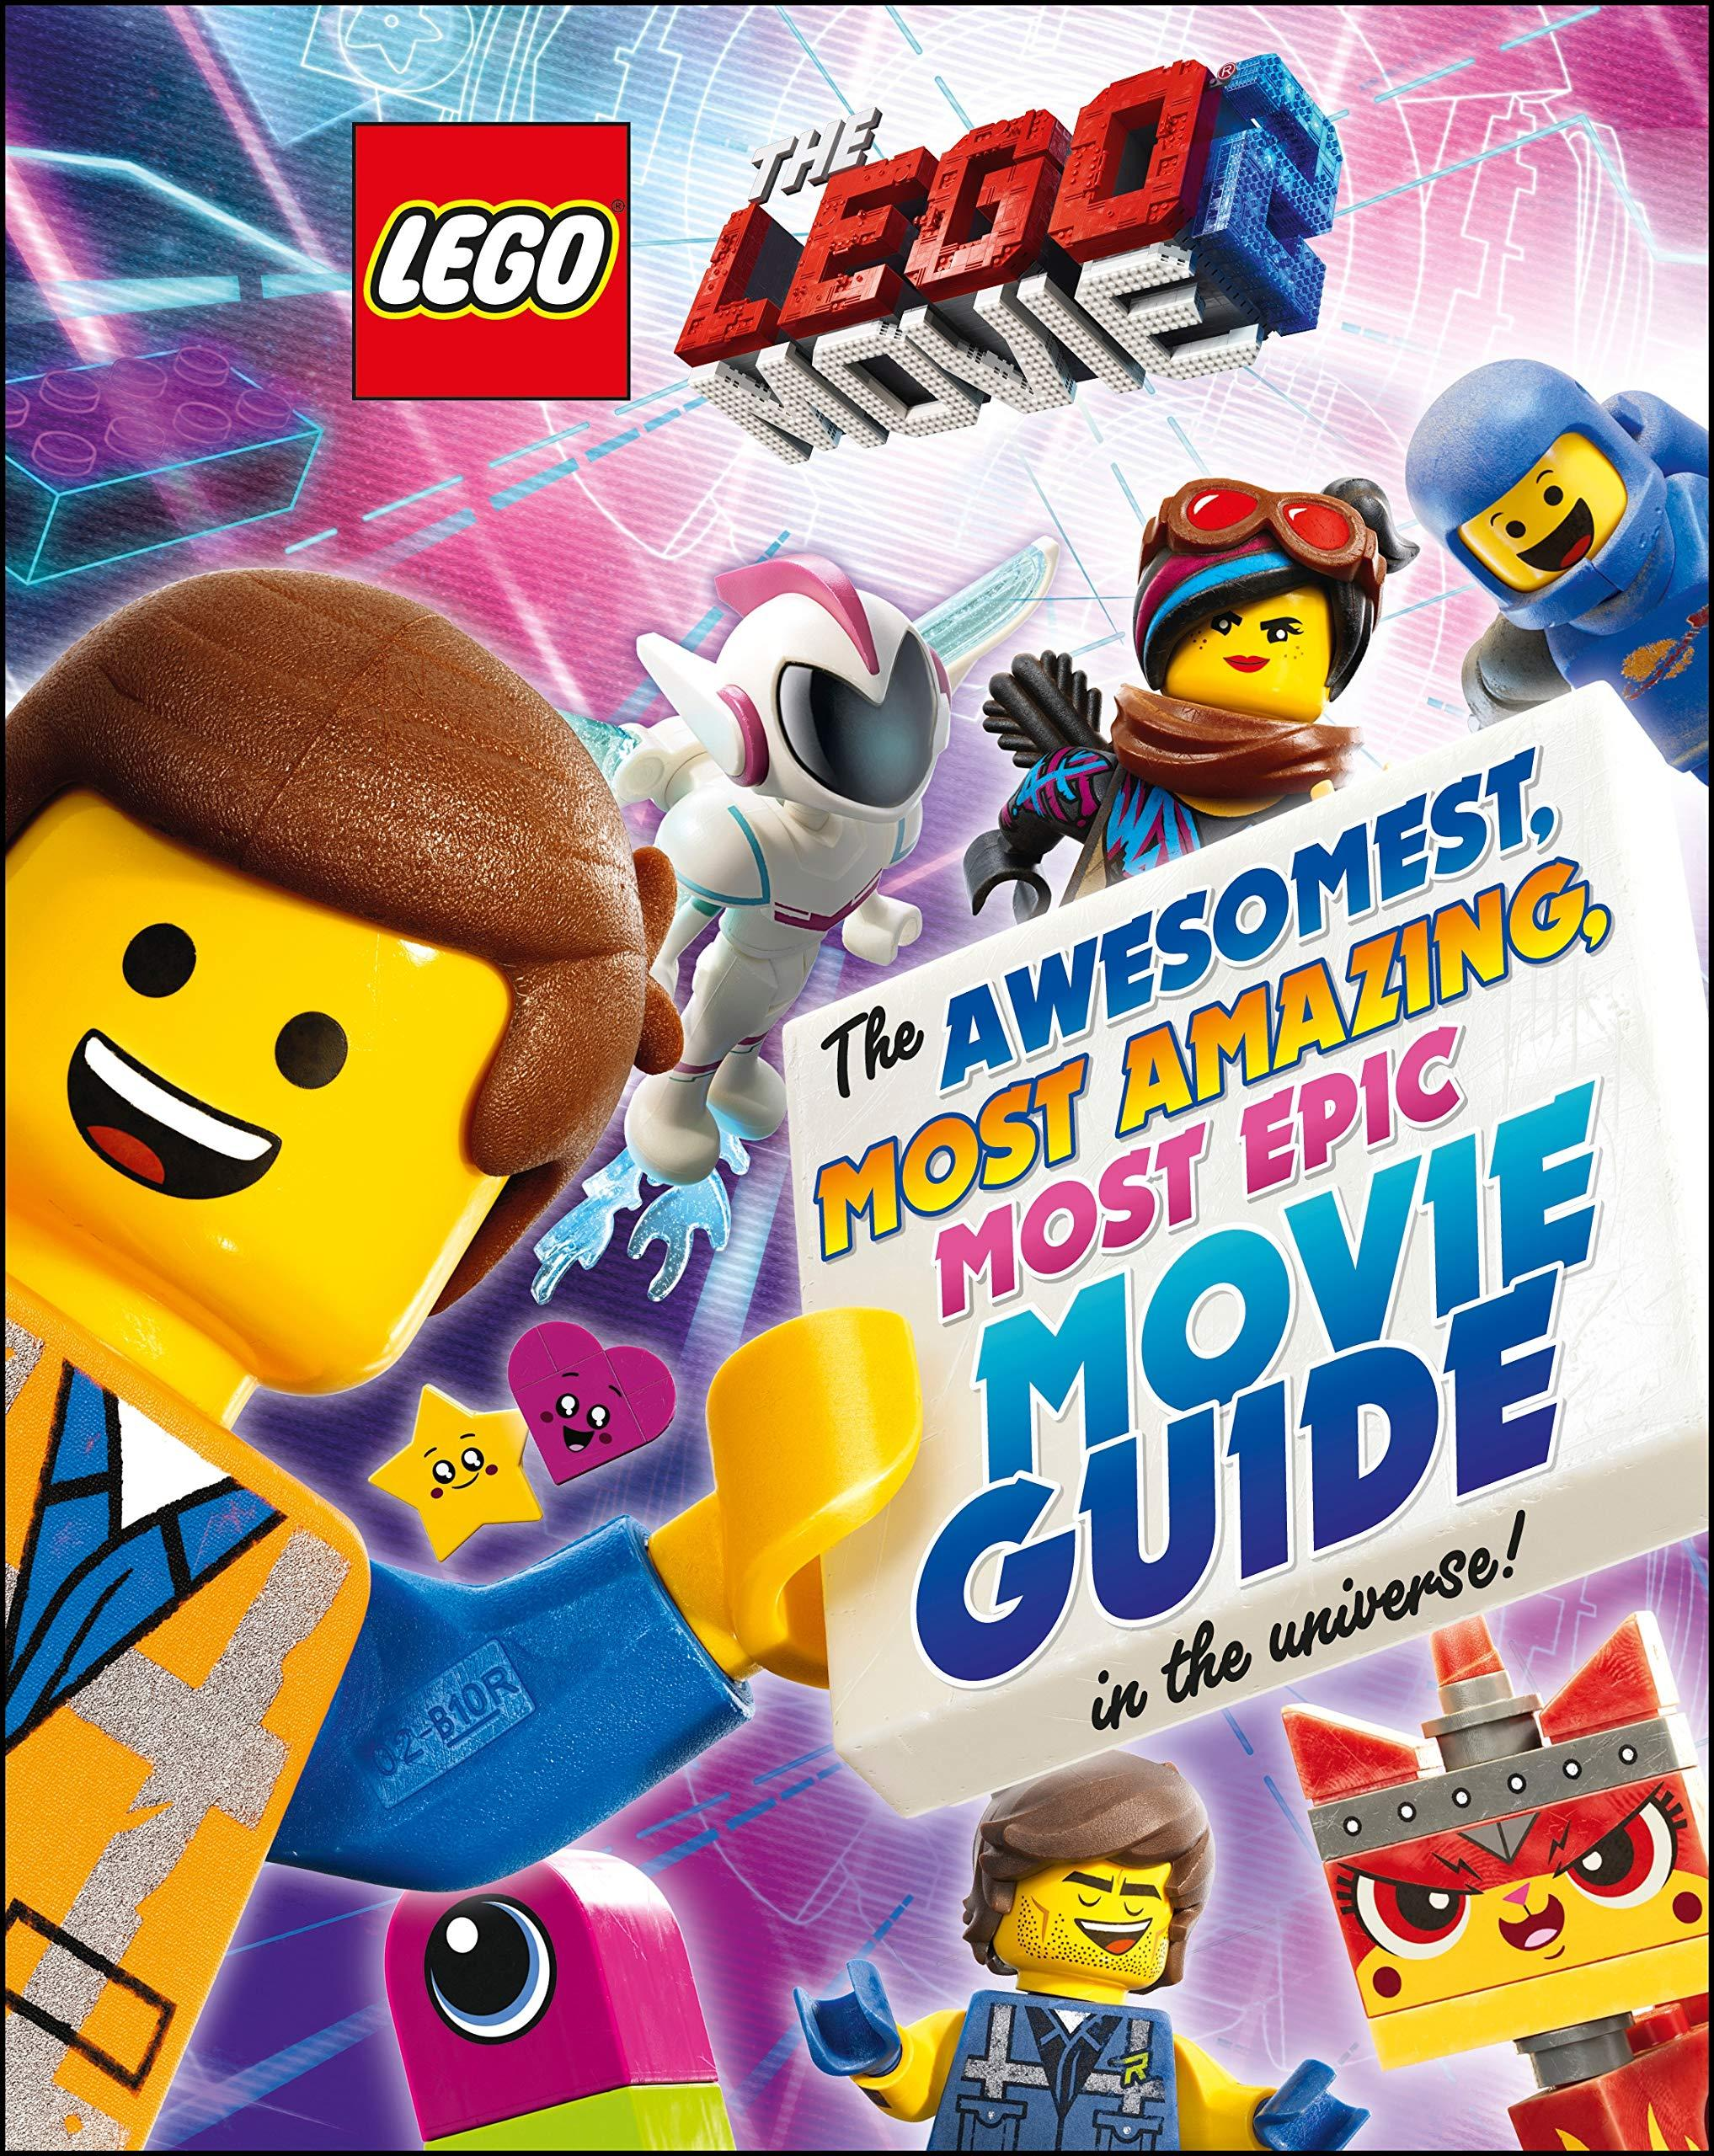 The LEGO Movie 2 The Awesomest, Amazing, Most Epic Movie Guide in the Universe!